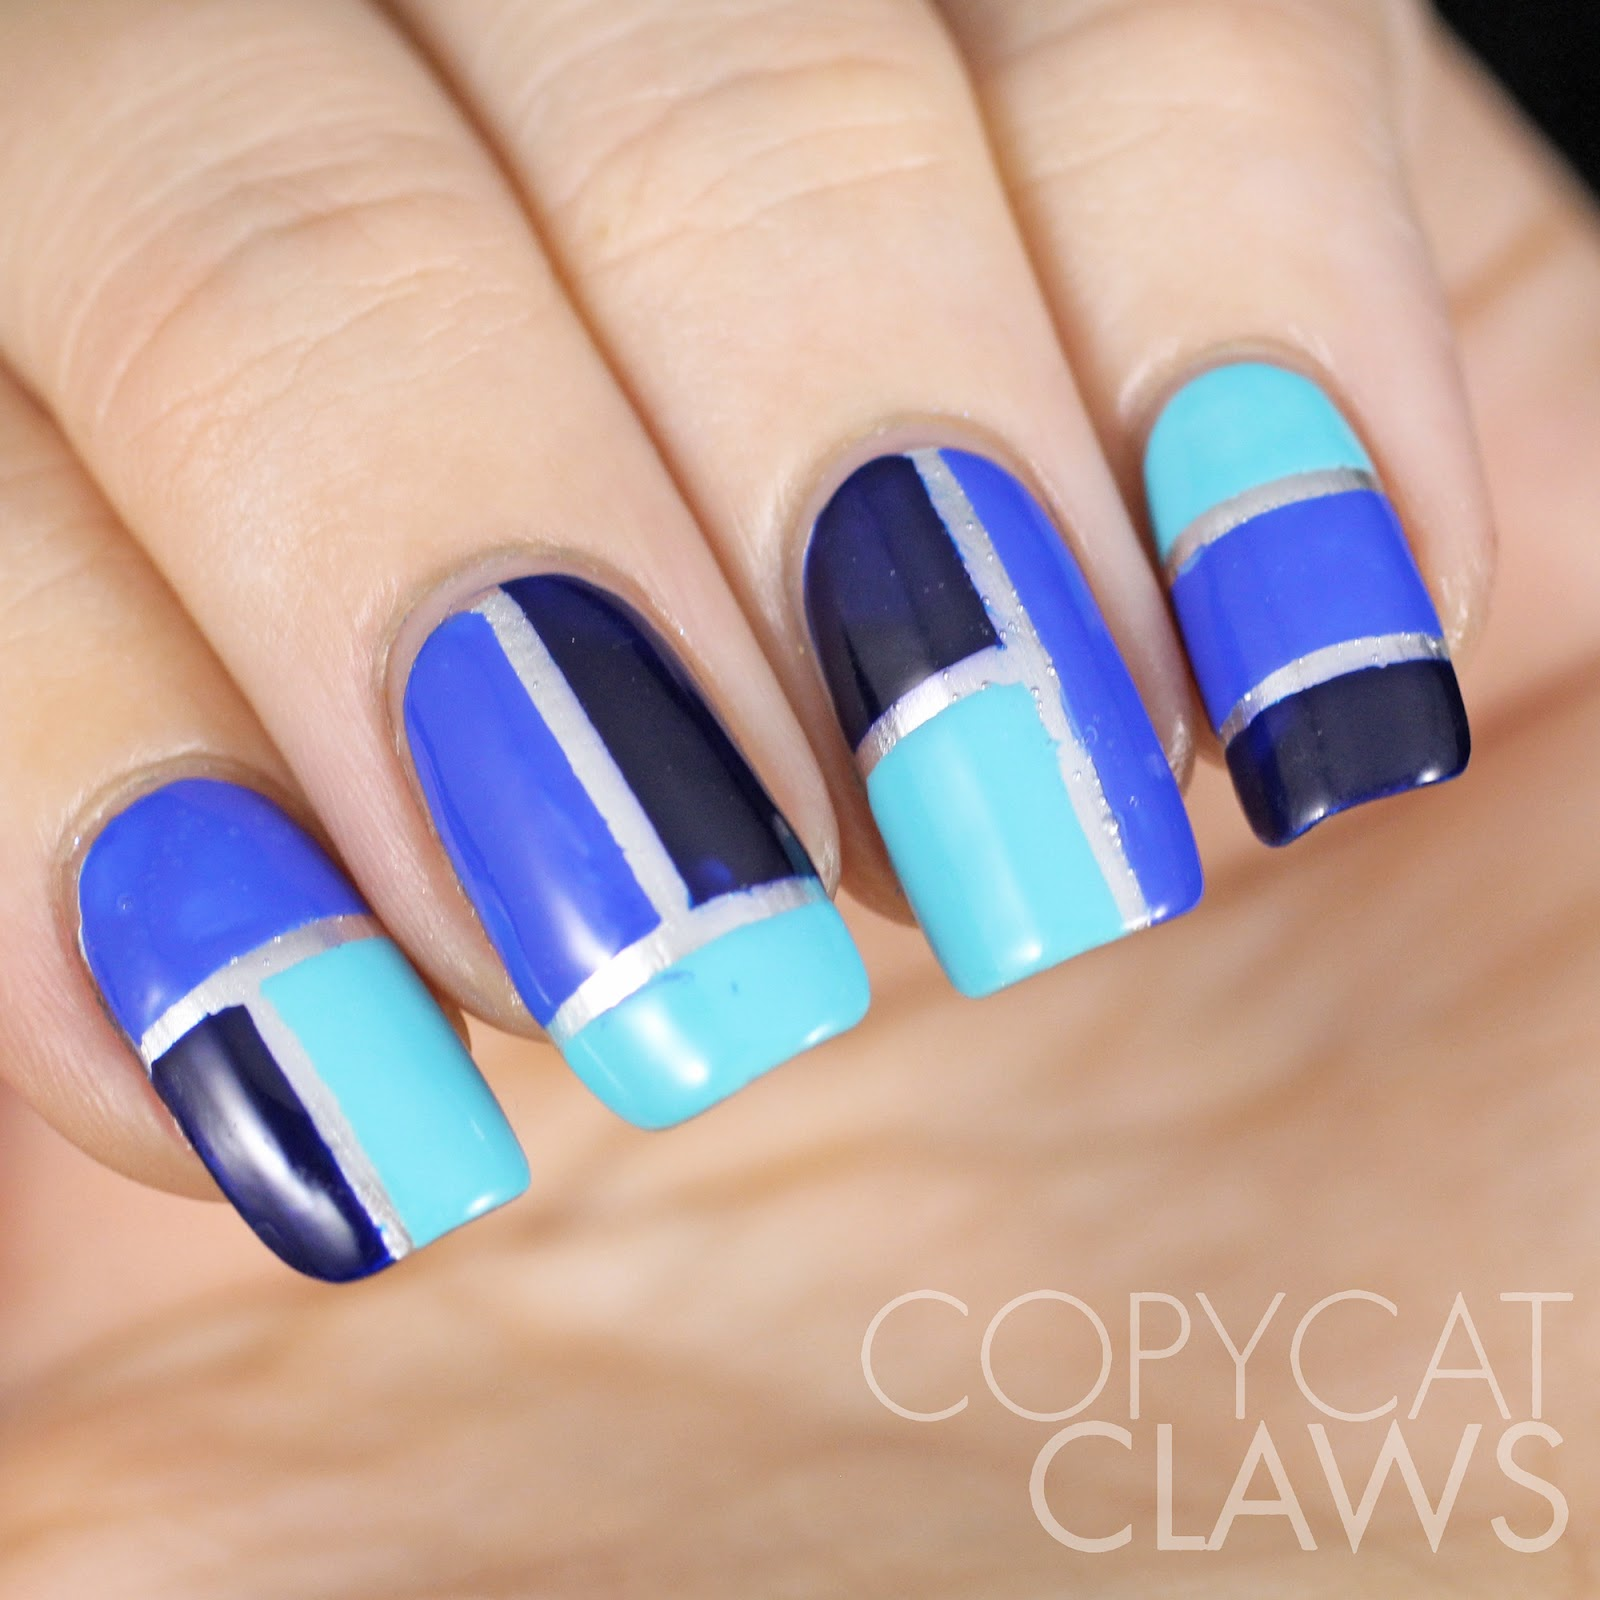 Copycat claws blue color block nail art after i pulled the nail vinyls off i finished with a coat of hk girl it left some bubbles on my ring finger as you can see but no biggie prinsesfo Images